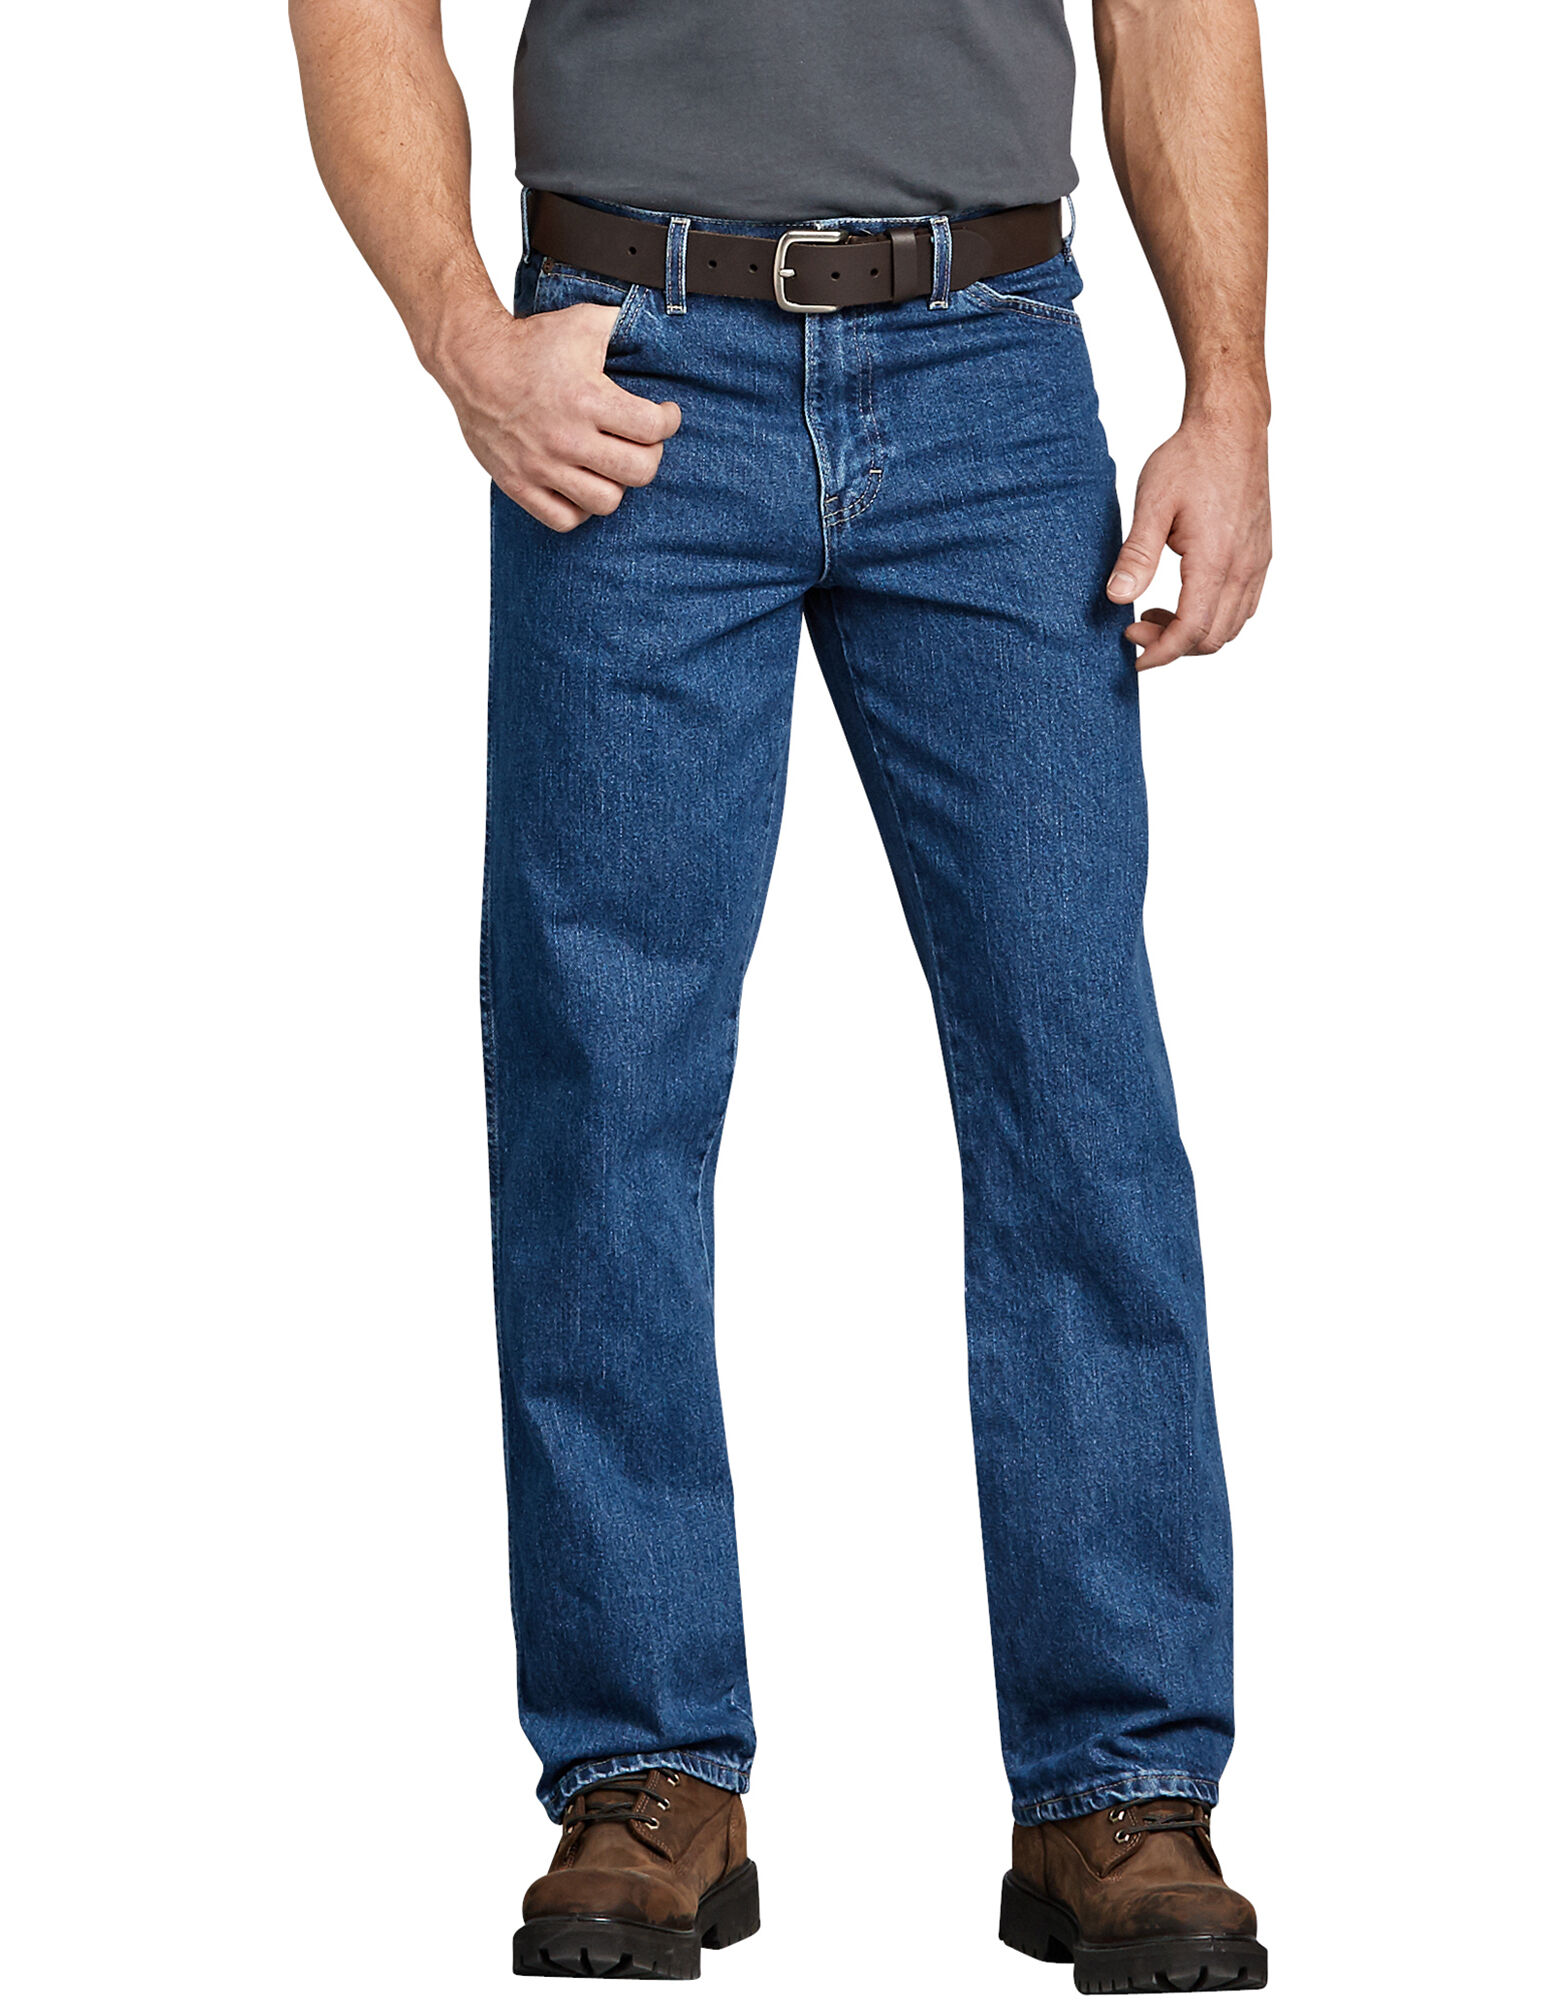 FREE SHIPPING AVAILABLE! Shop hereyfiletk.gq and save on Regular Fit Jeans.